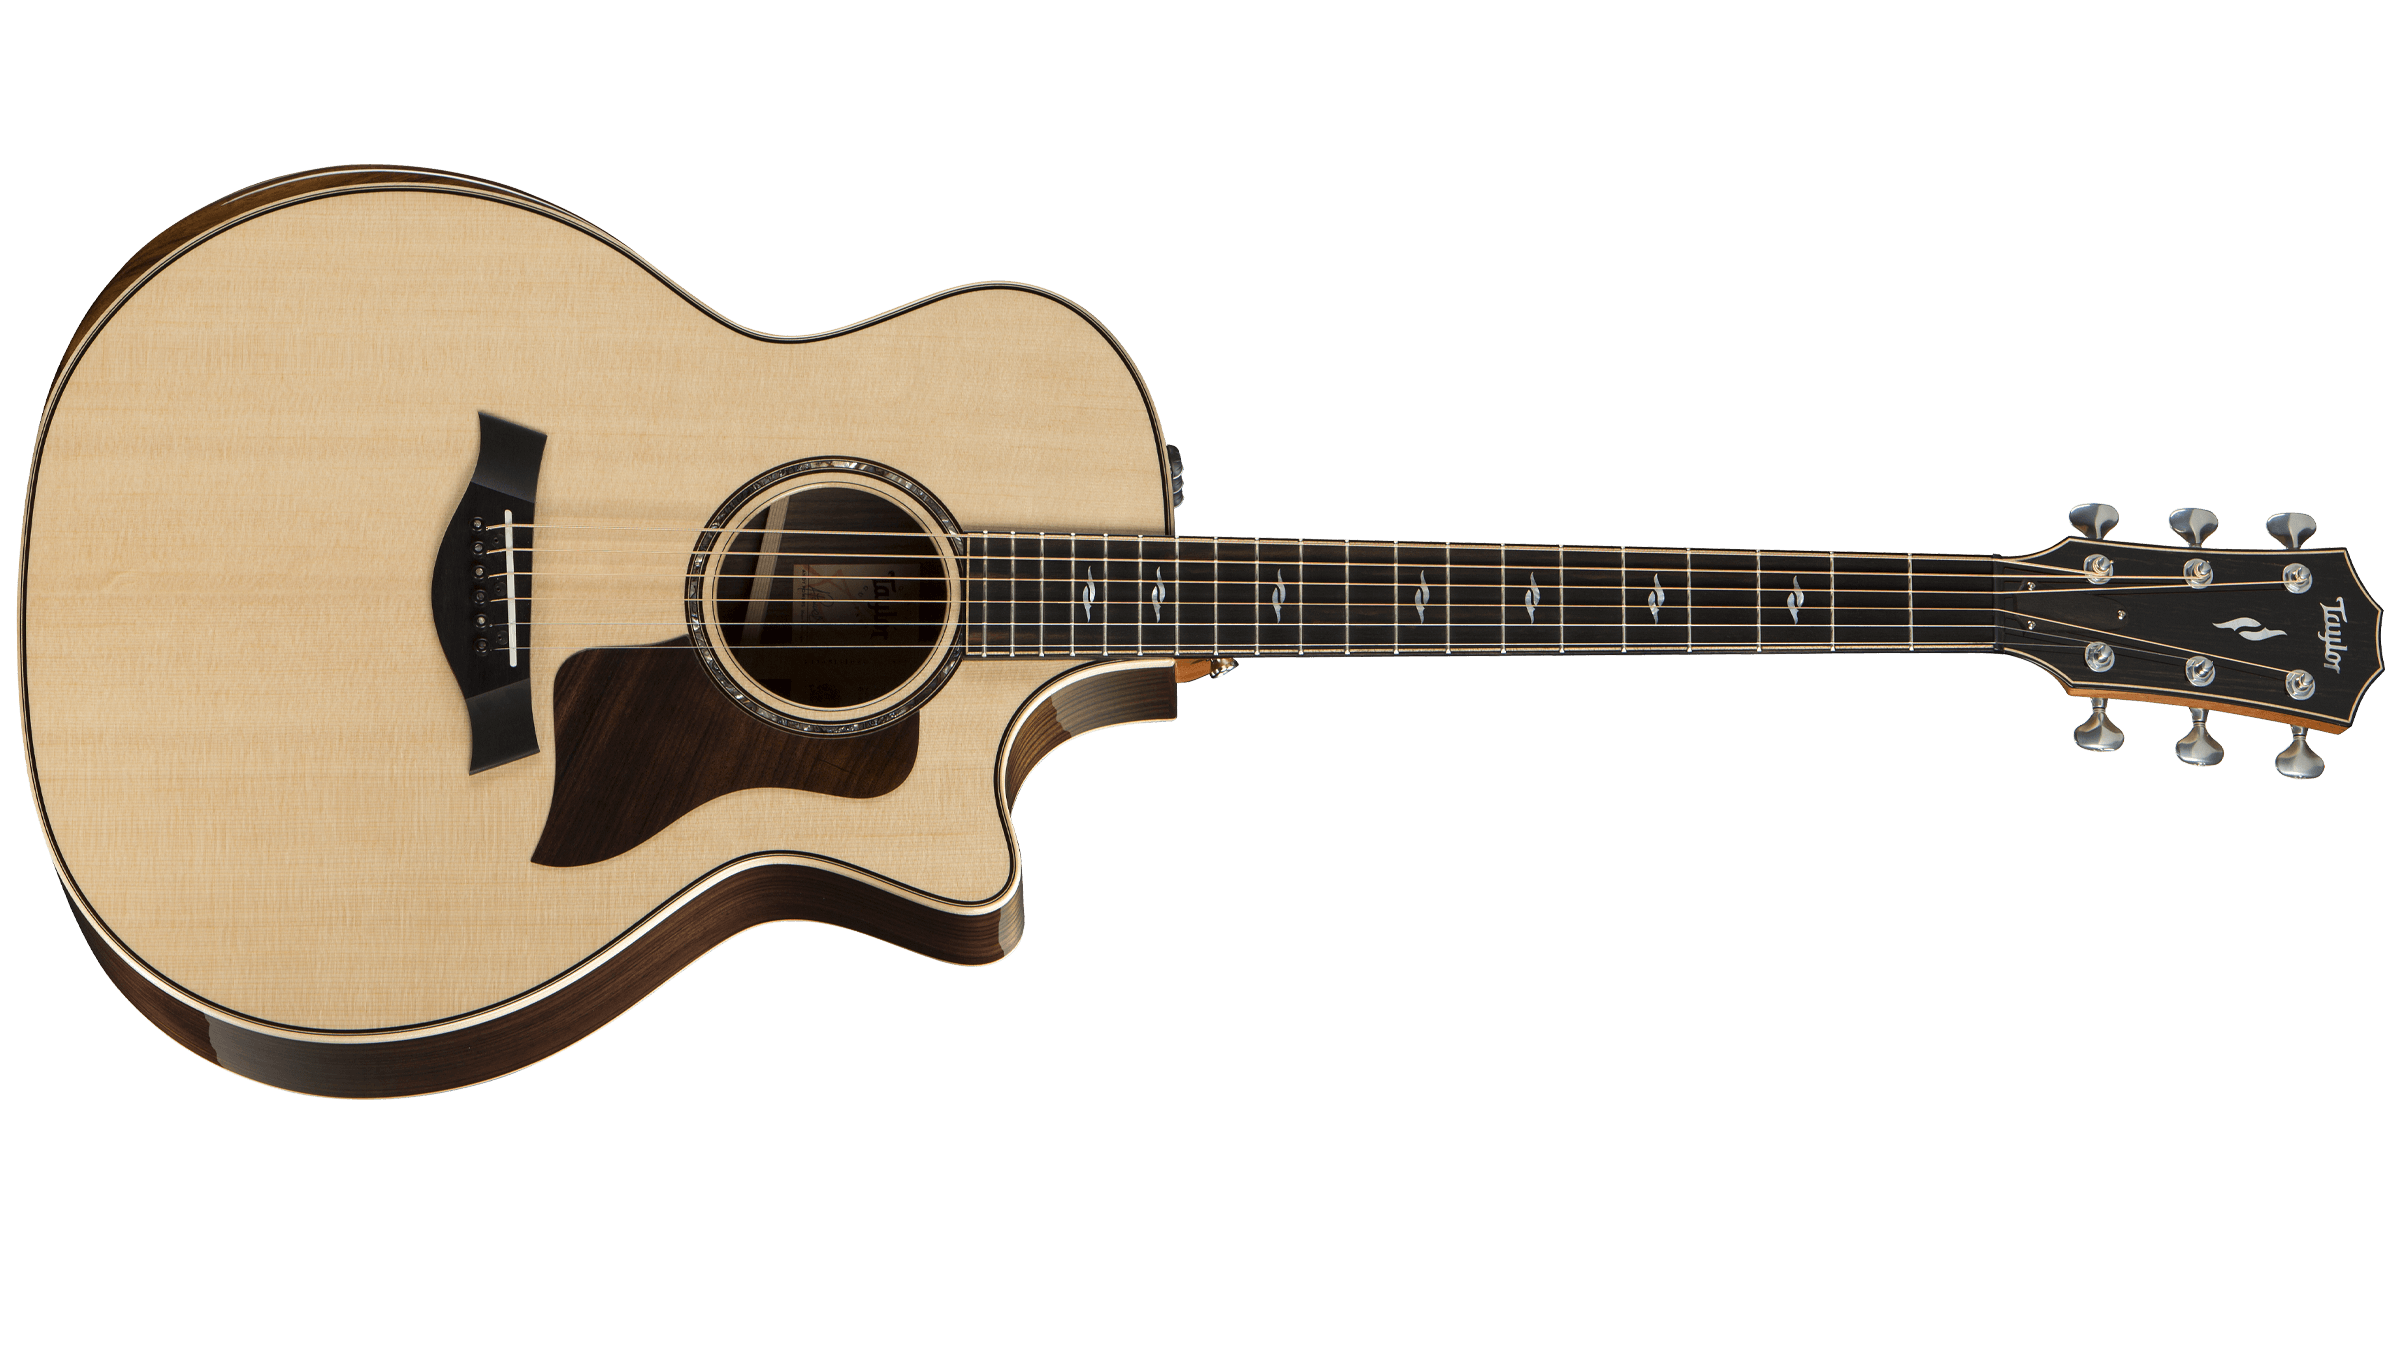 Growth drawing acoustic guitar. More v class guitars